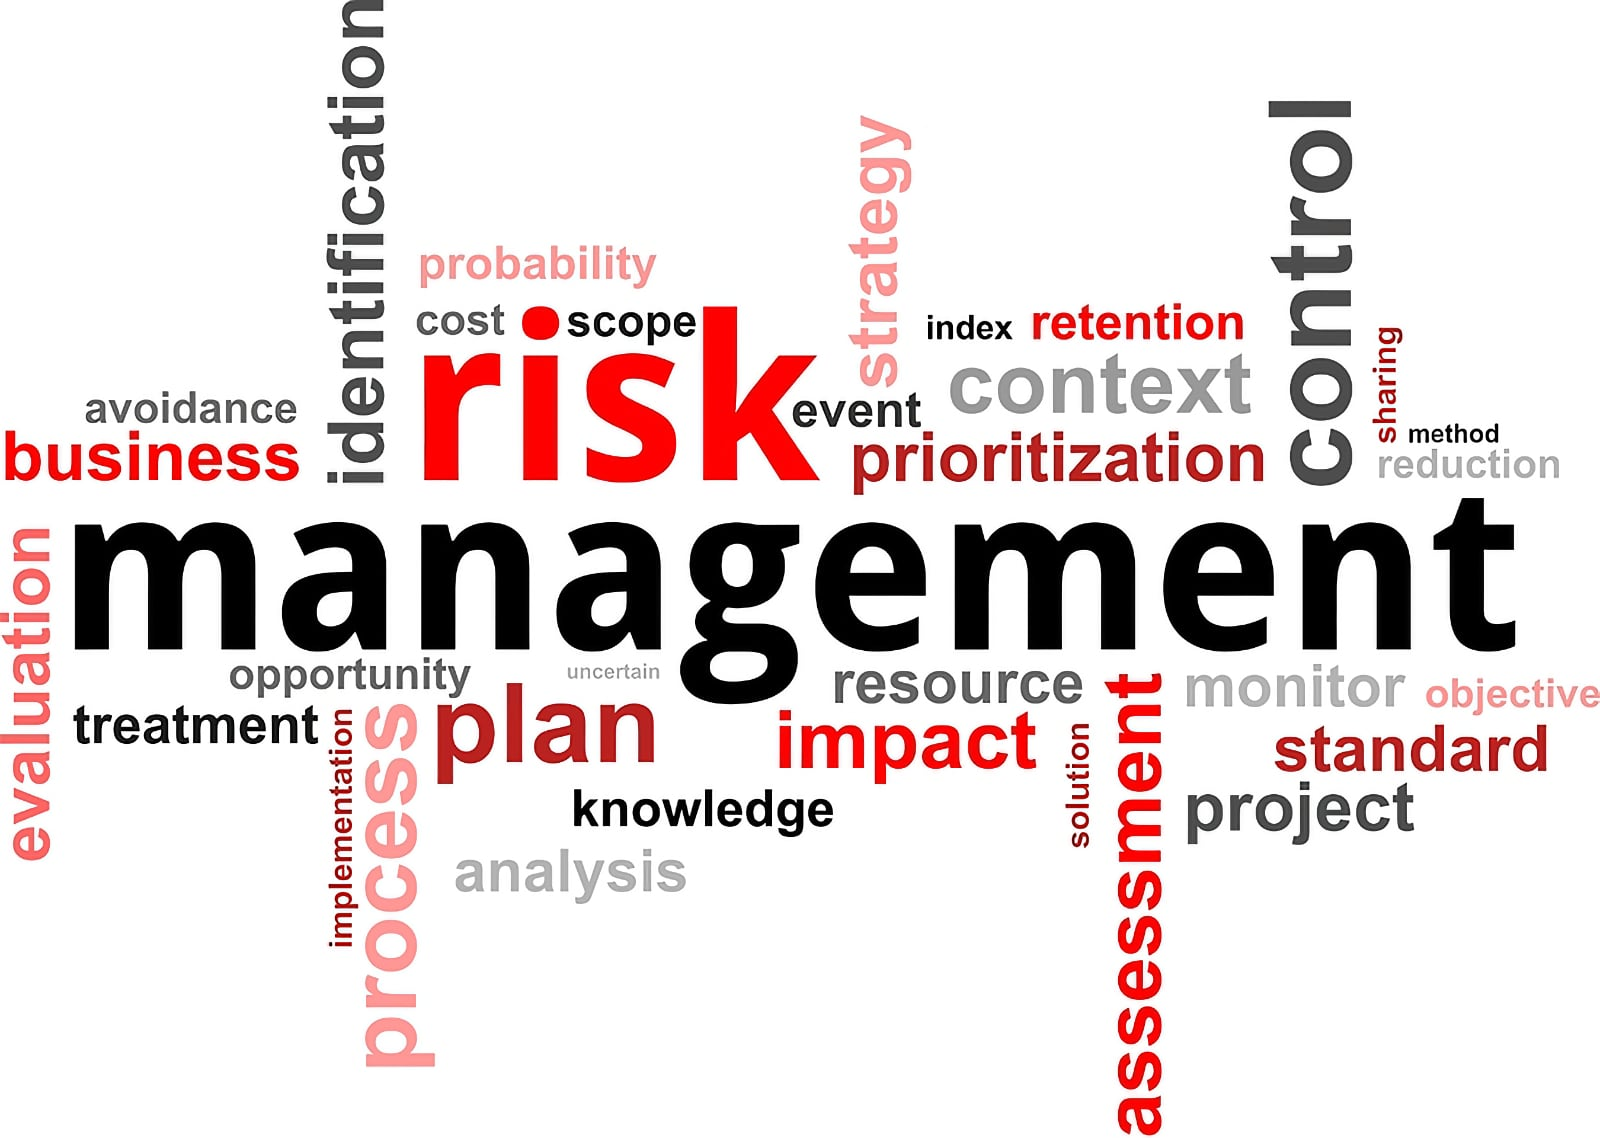 Word cloud concept image centred on the phrase Risk Management, with various other related words also included